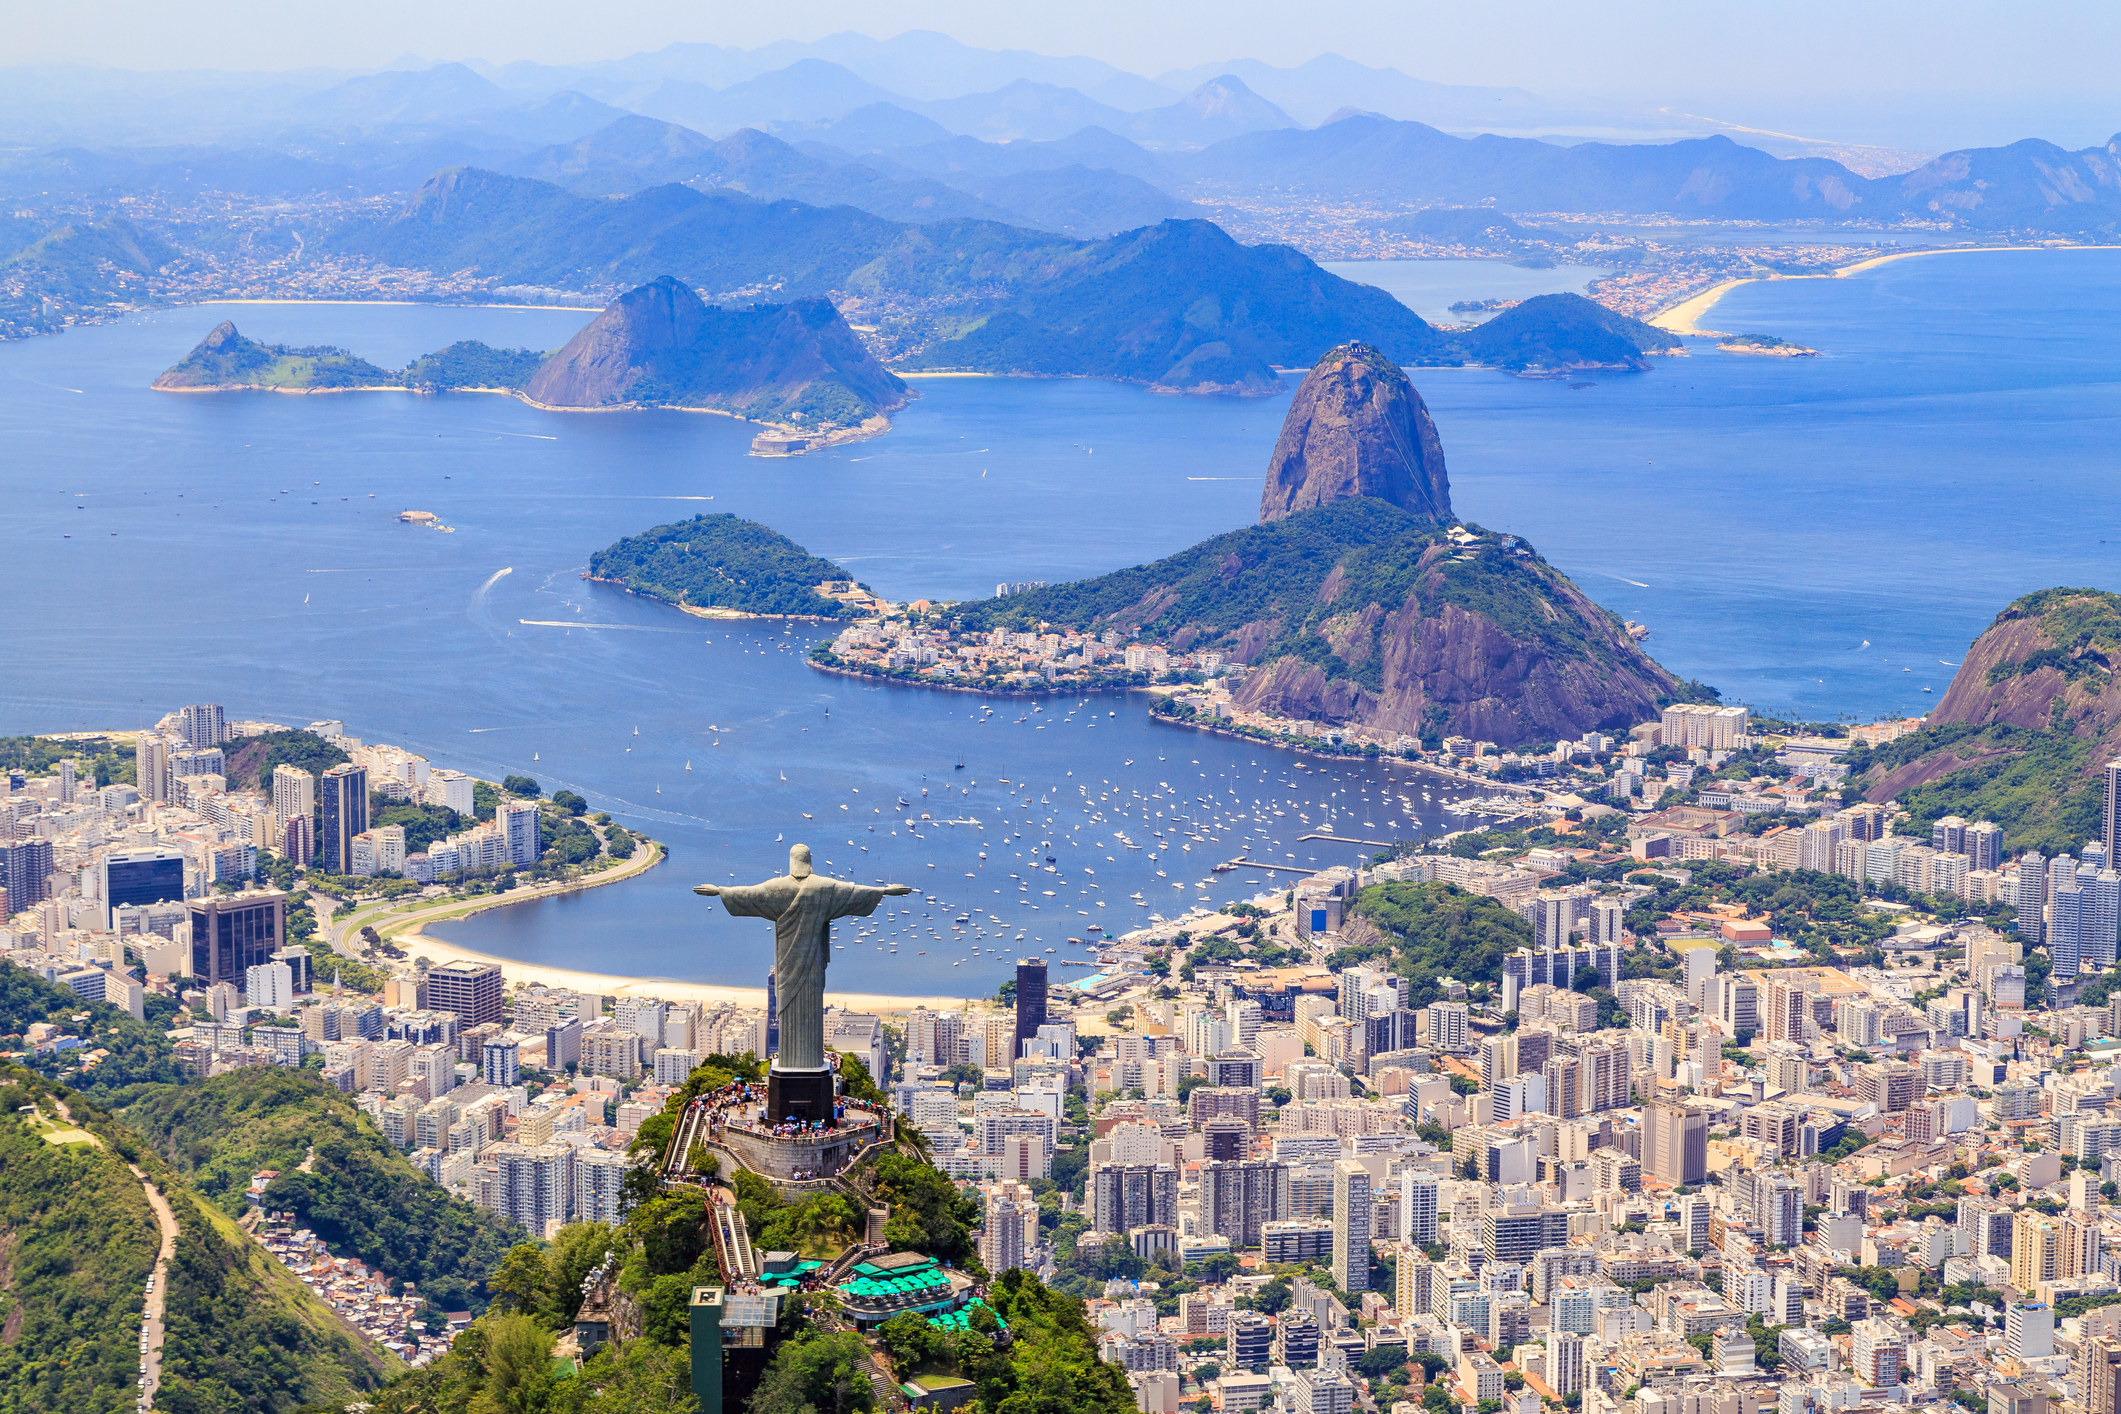 Scene from Rio de Janeiro and shoreline with statue of Christ the Redeemer in the foreground and mountains in the distance